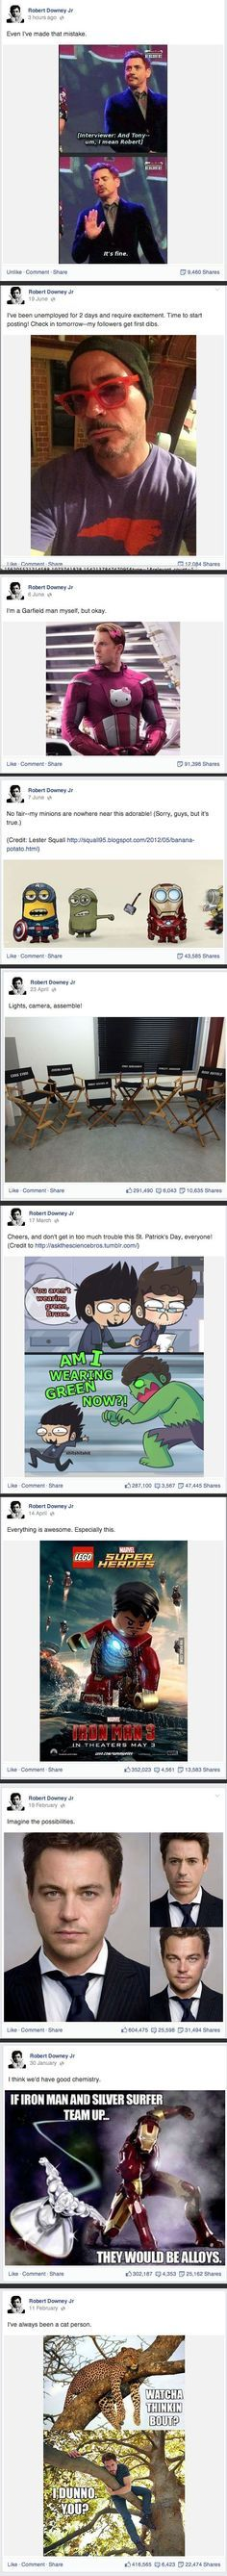 RDJ is awesome. The fact he googles himself and posts